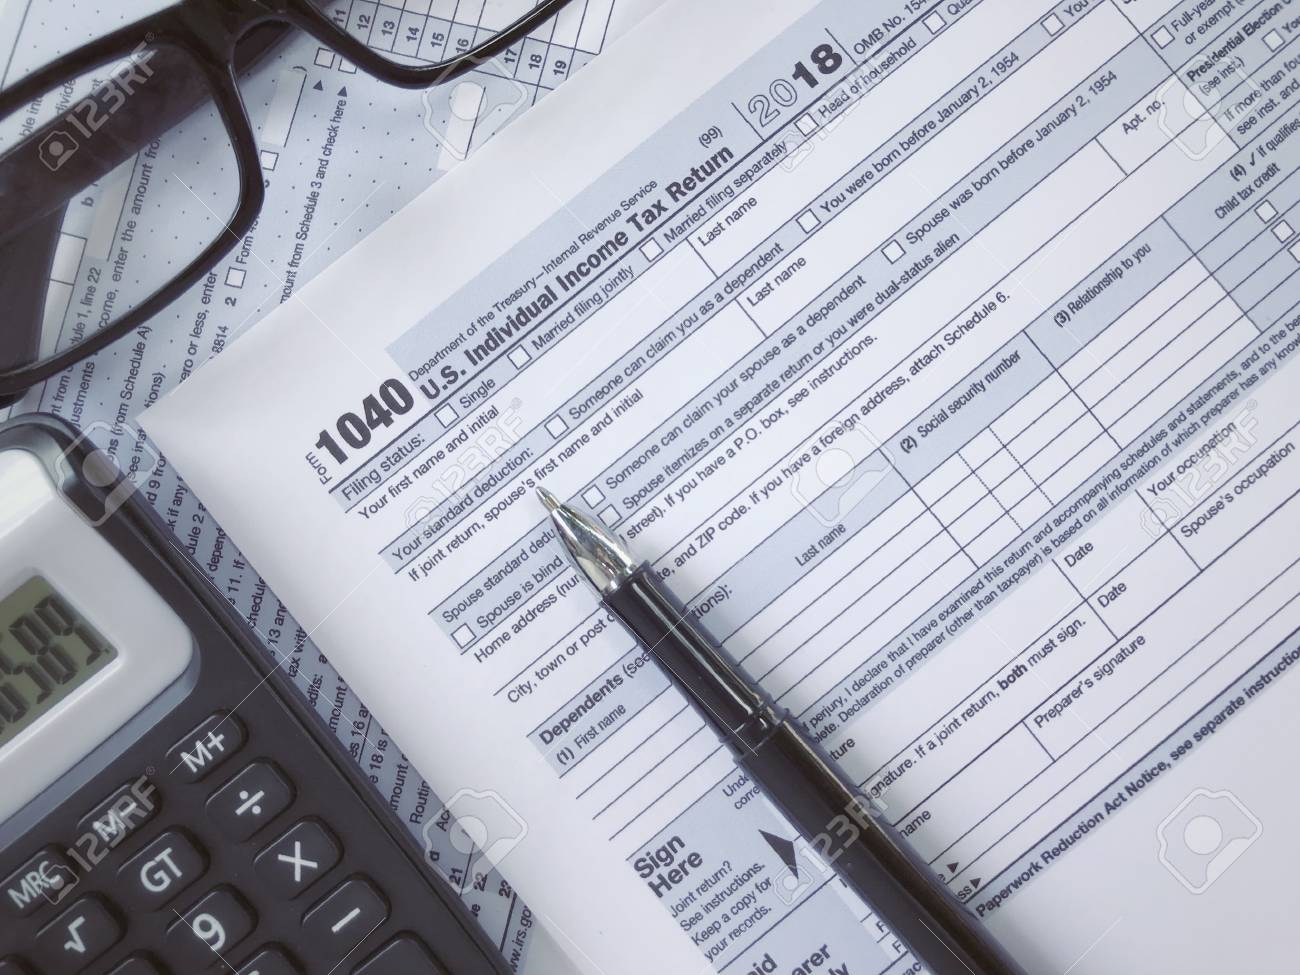 United States federal income tax return IRS 1040 documents, with